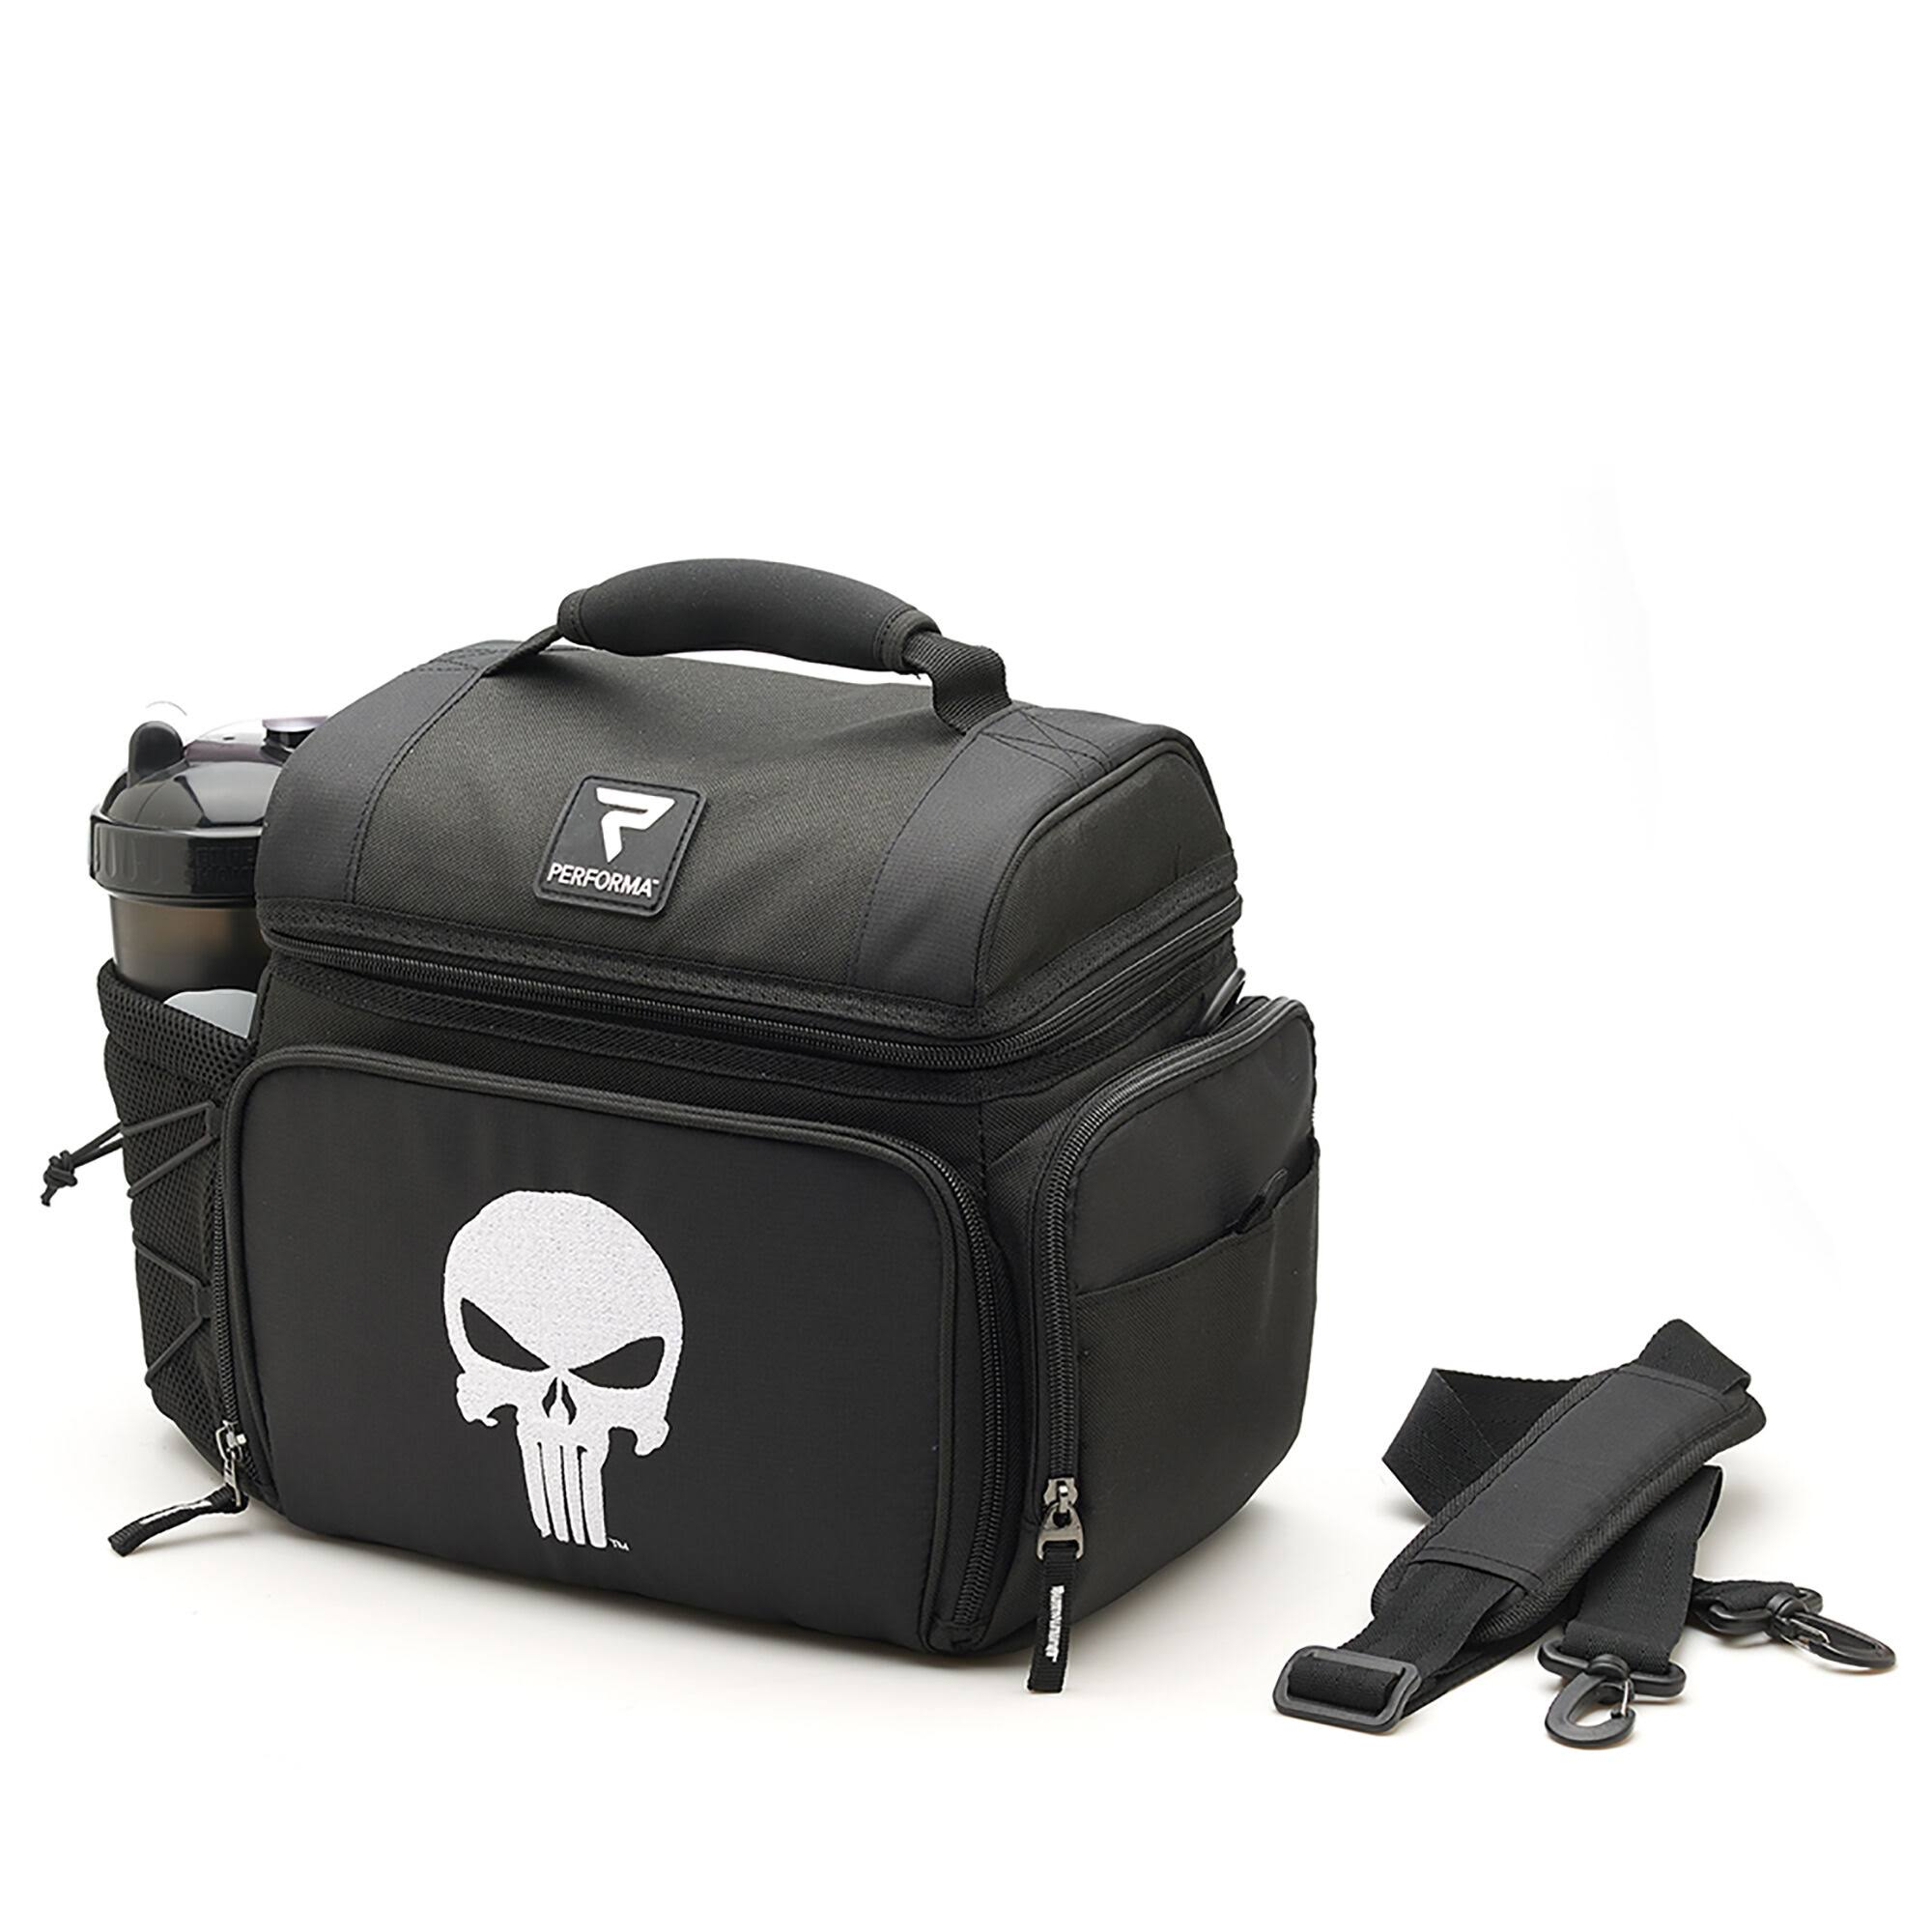 PerfectShaker Meal Prep Bag - Punisher